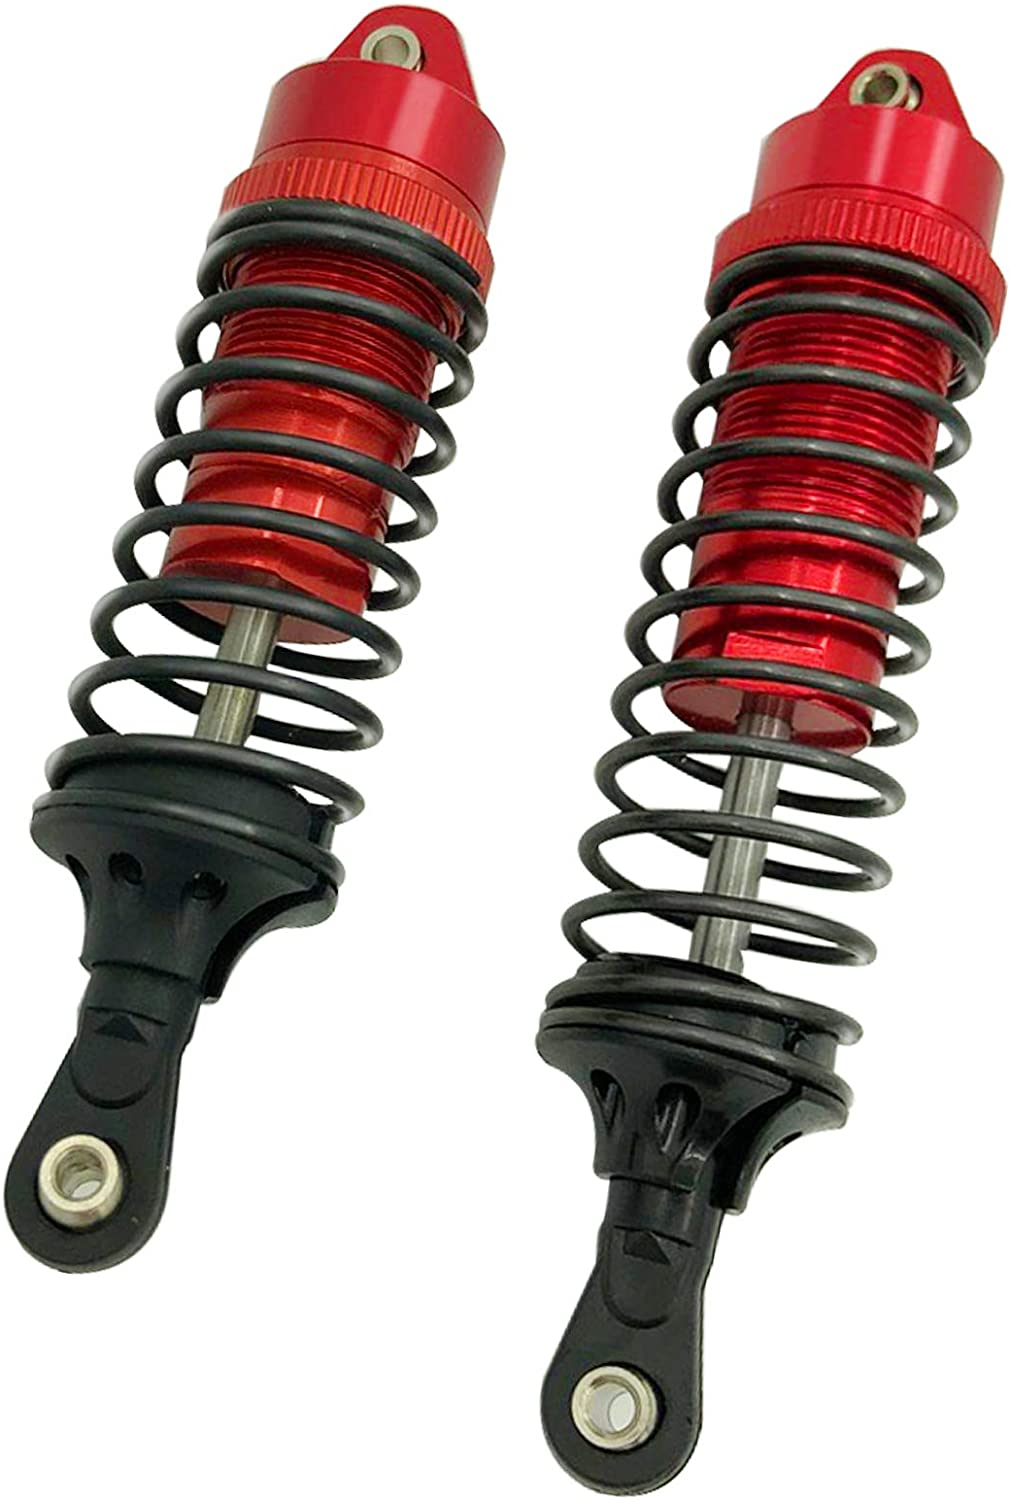 HOPLEX Aluminum Front /& Rear Shock Absorber for 1//10 Traxxas Slash 4x4 4WD 4PCS Durable Upgrade RC Car Shocks Replace 5862